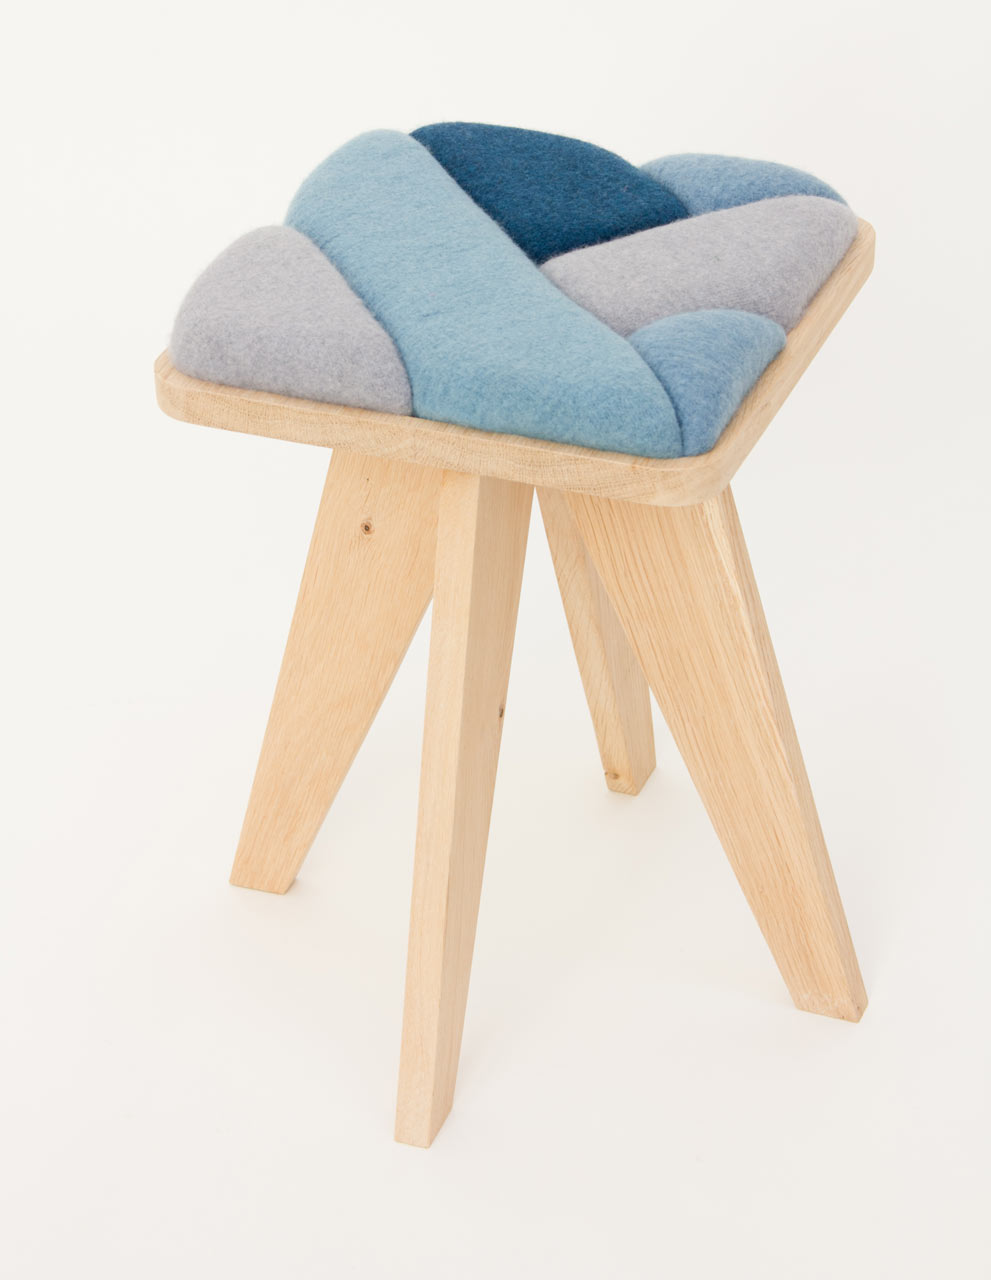 Windworks-Collection-Merel-Karhof-12-stool-indigo